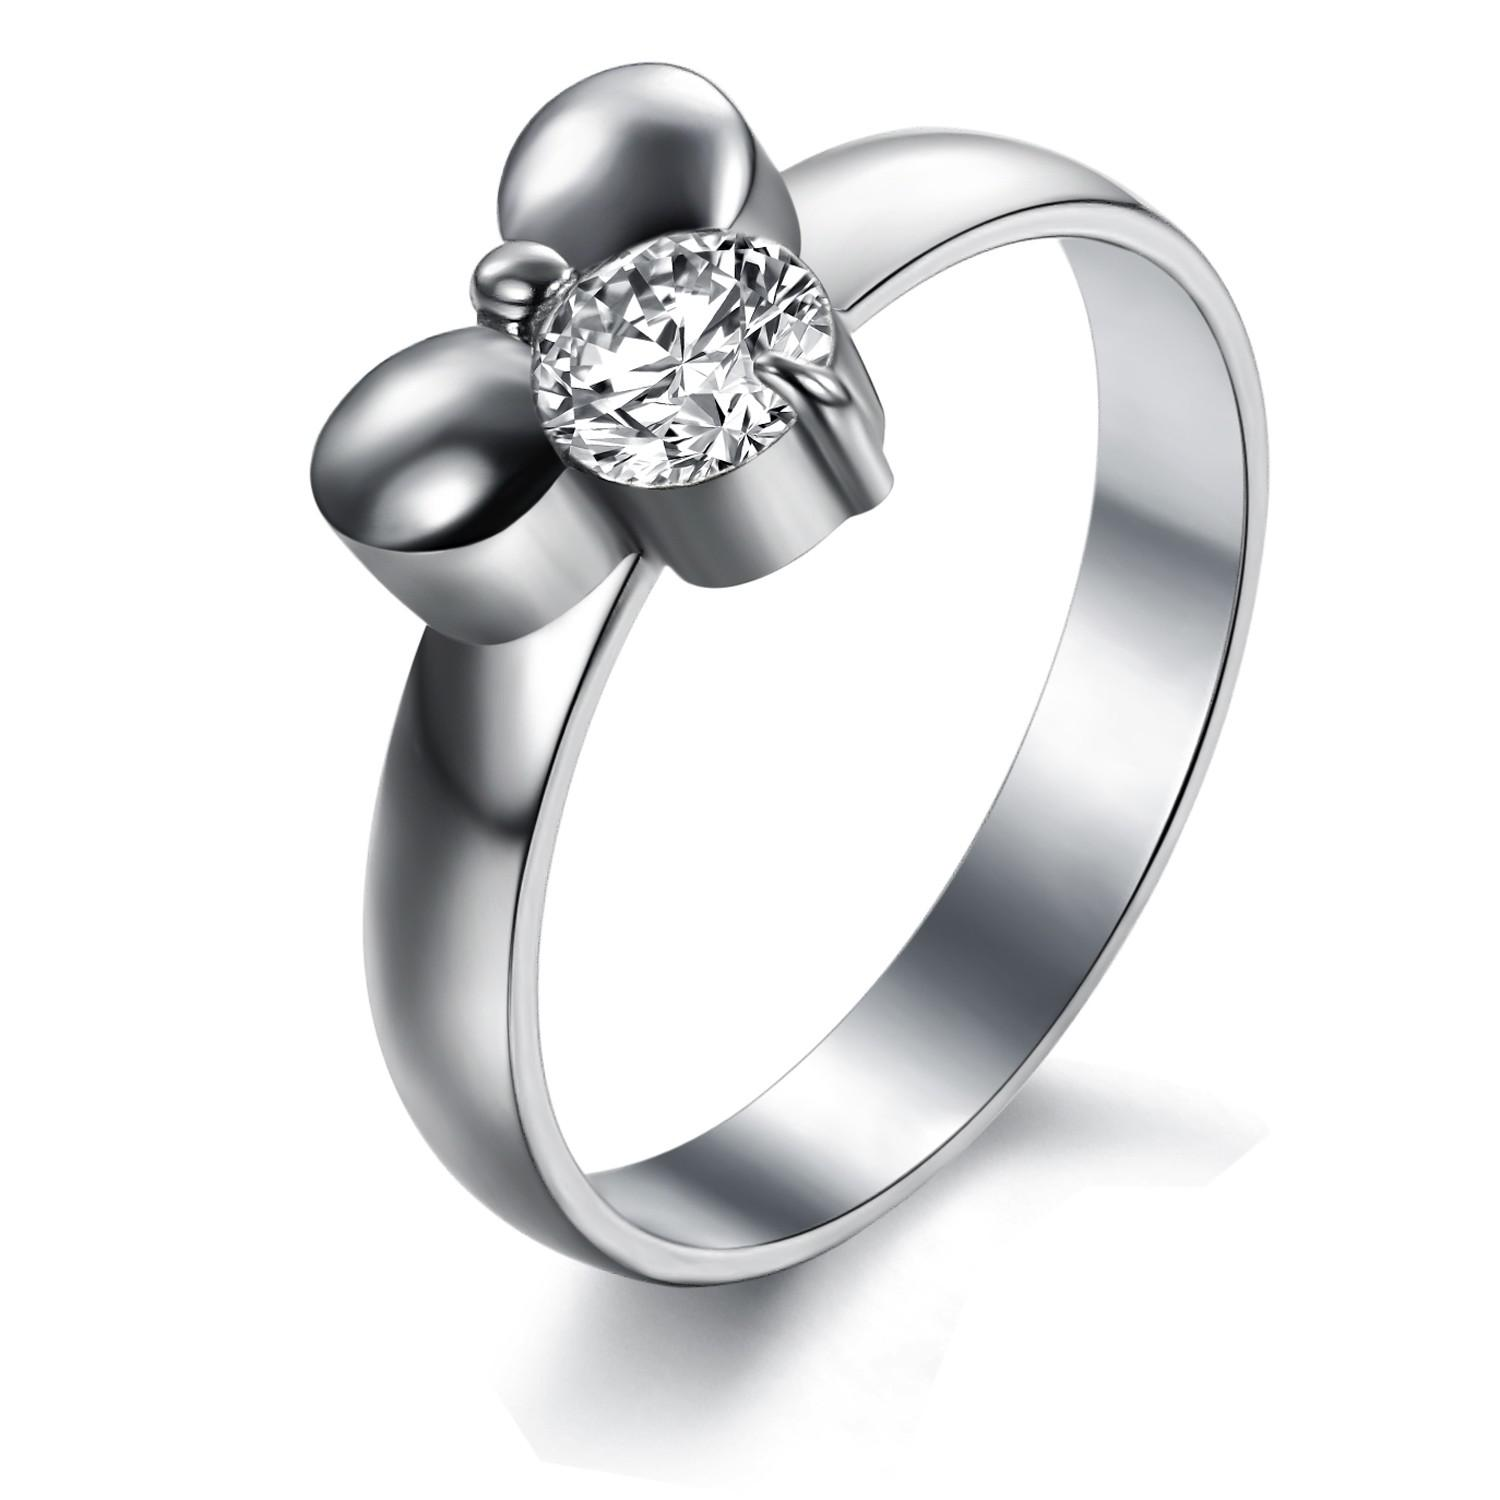 2017 Plated Platinum Wedding Rings Engagement Rings From